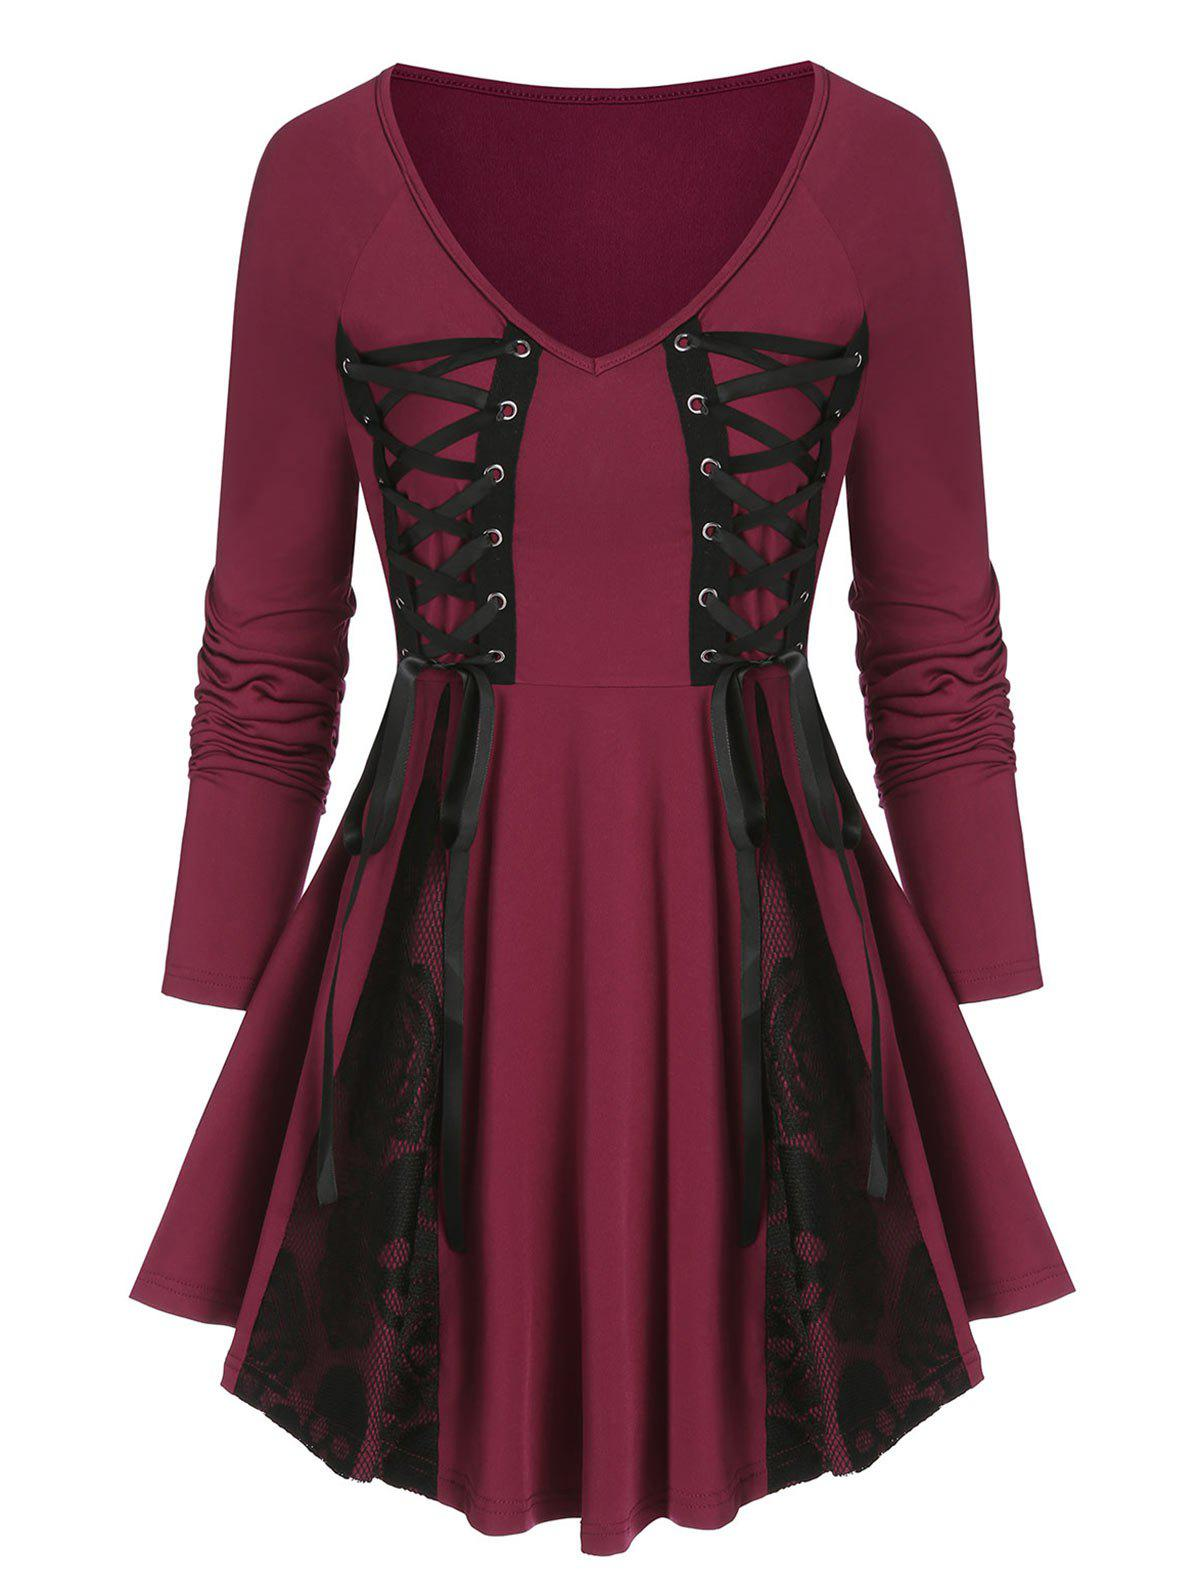 Lace Up Lace Insert Gothic Skirted T Shirt - RED WINE L